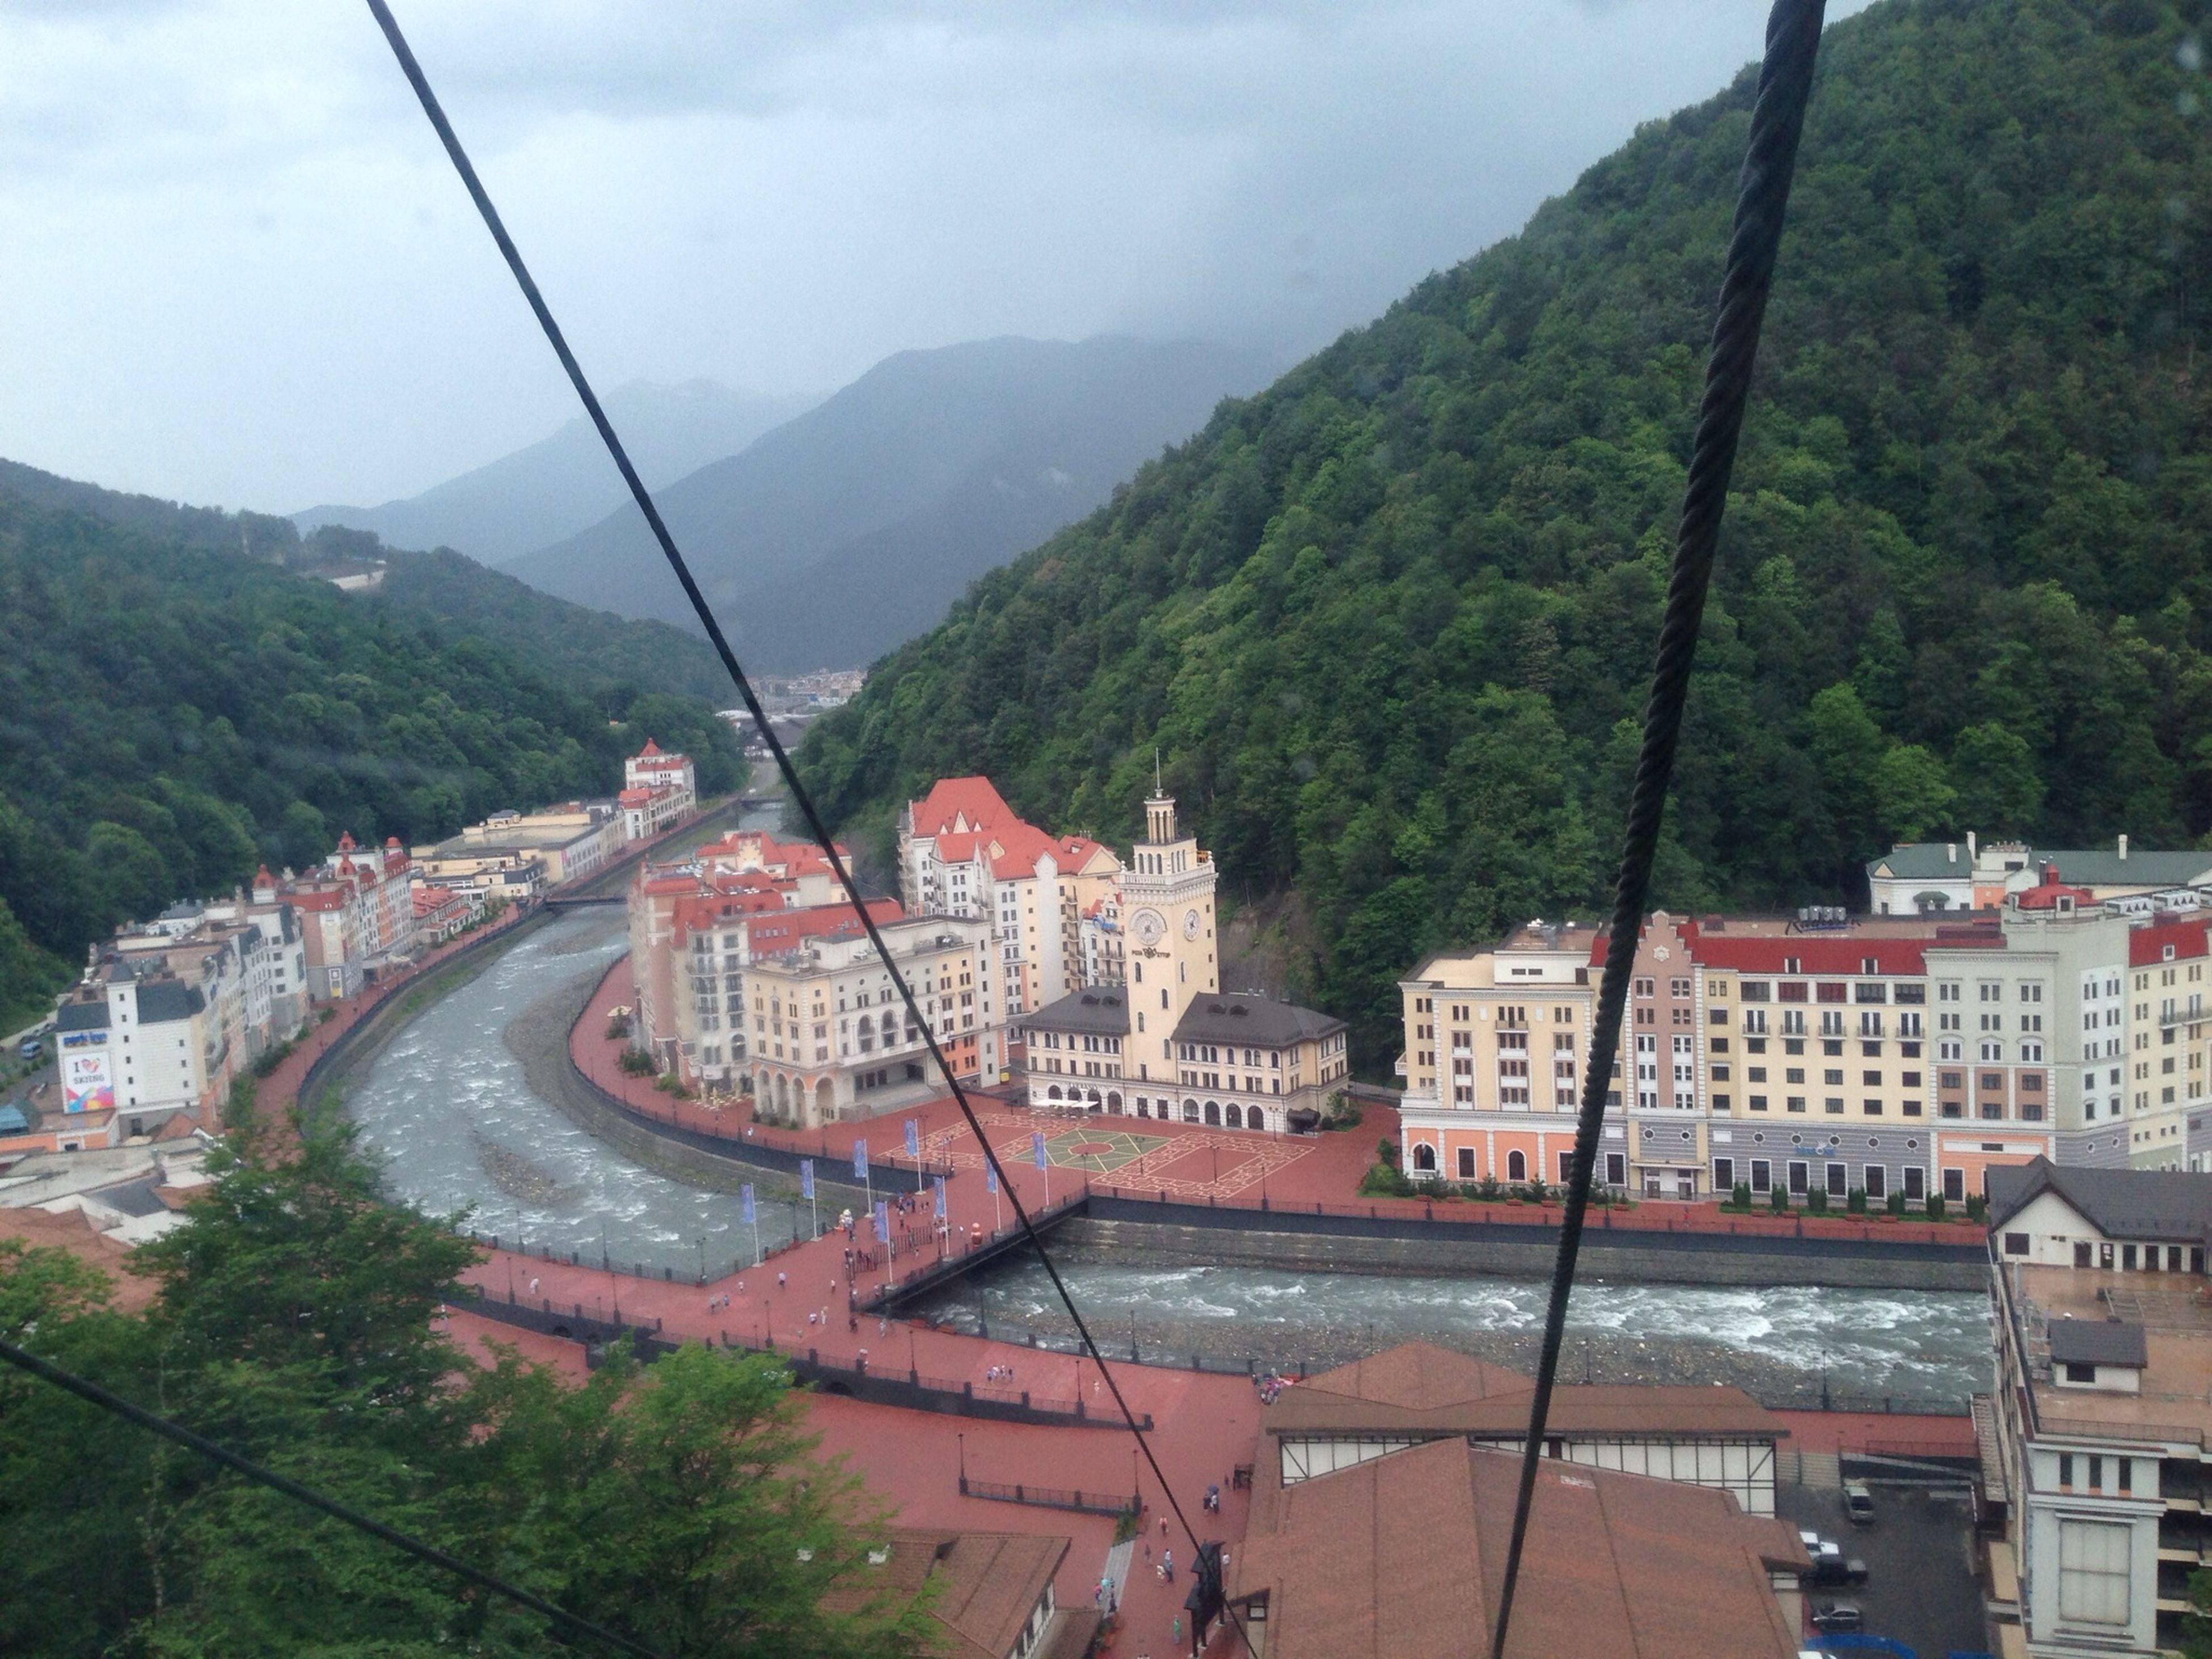 mountain, architecture, built structure, tree, building exterior, mountain range, transportation, high angle view, sky, connection, bridge - man made structure, road, river, house, day, outdoors, residential building, nature, residential structure, scenics